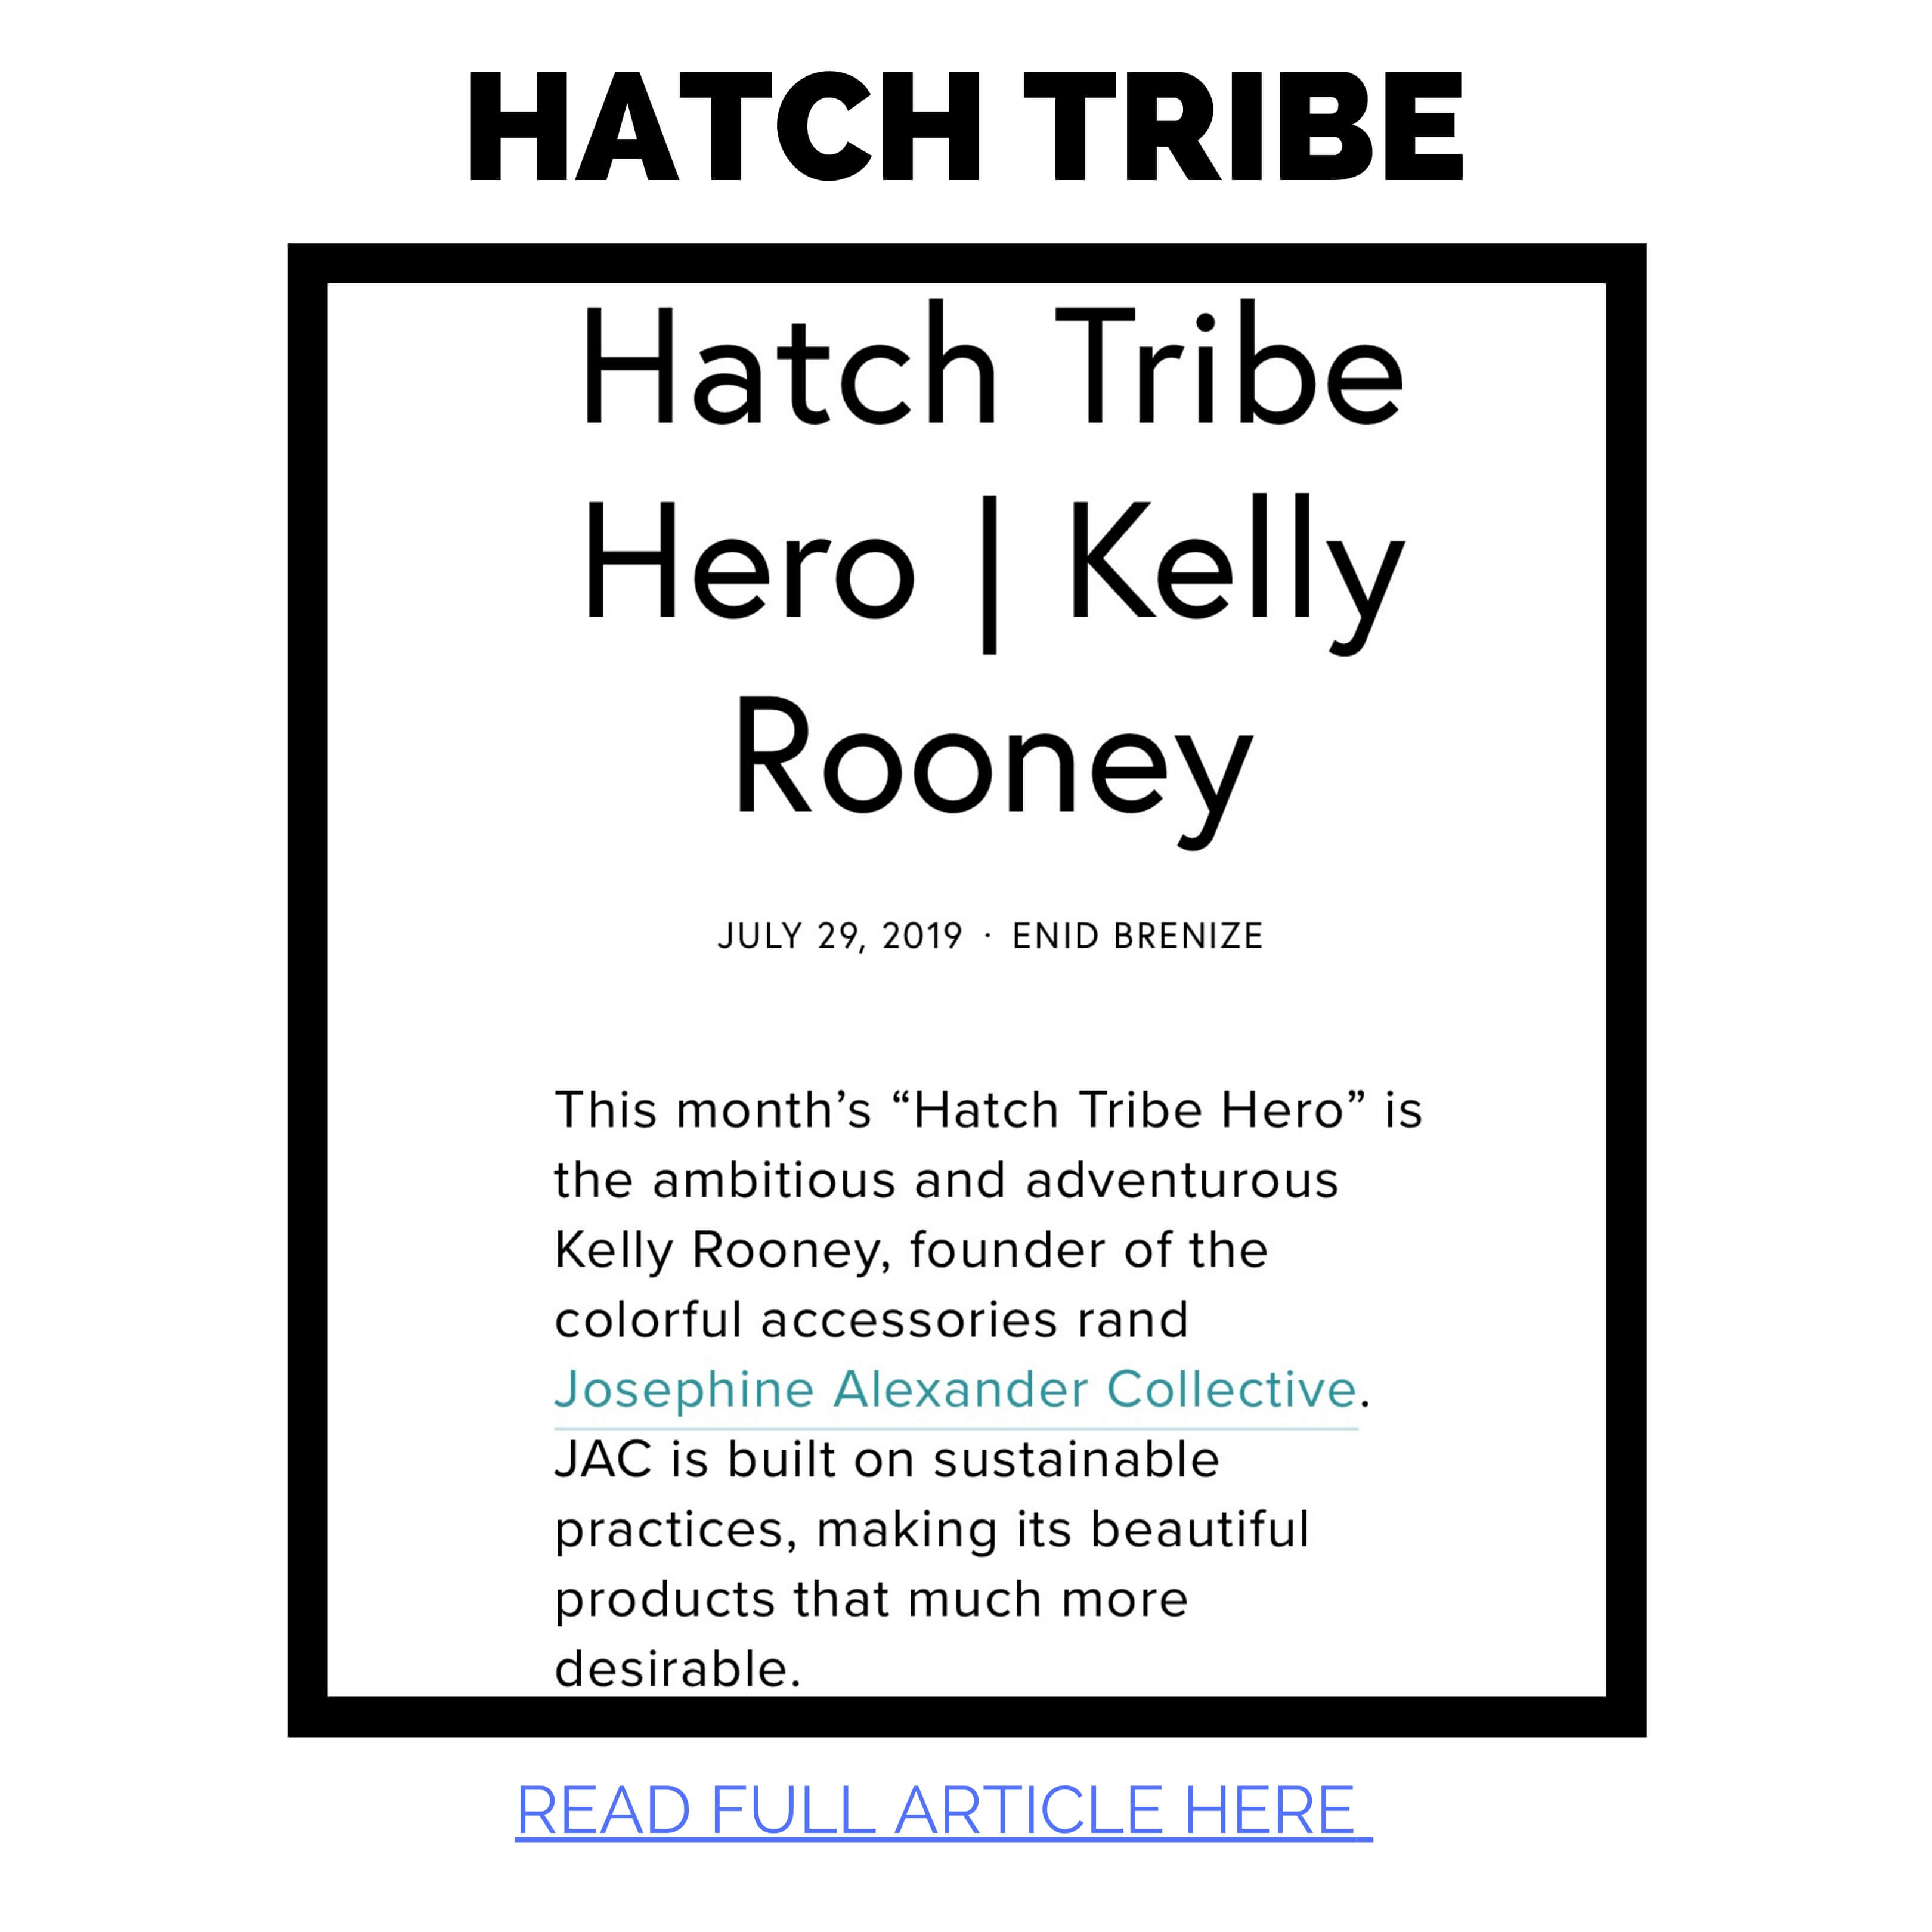 Kelly Rooney geo of JAC featured in Hatch Tribe